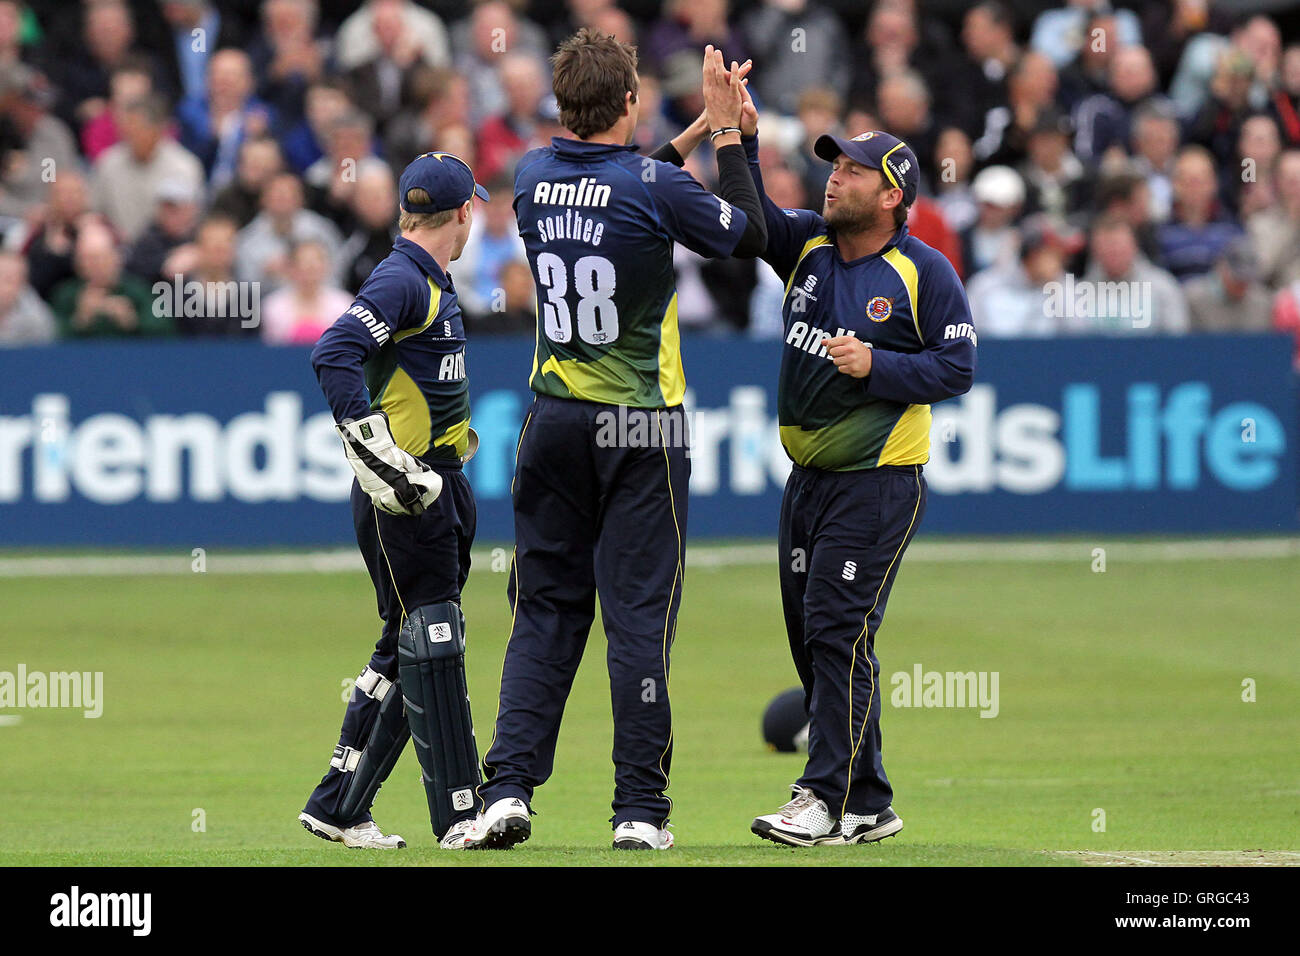 Essex players celebrate the wicket of Mark Cosgrove, bowled by Tim Southee - Essex Eagles vs Glamorgan Dragons  Stock Photo